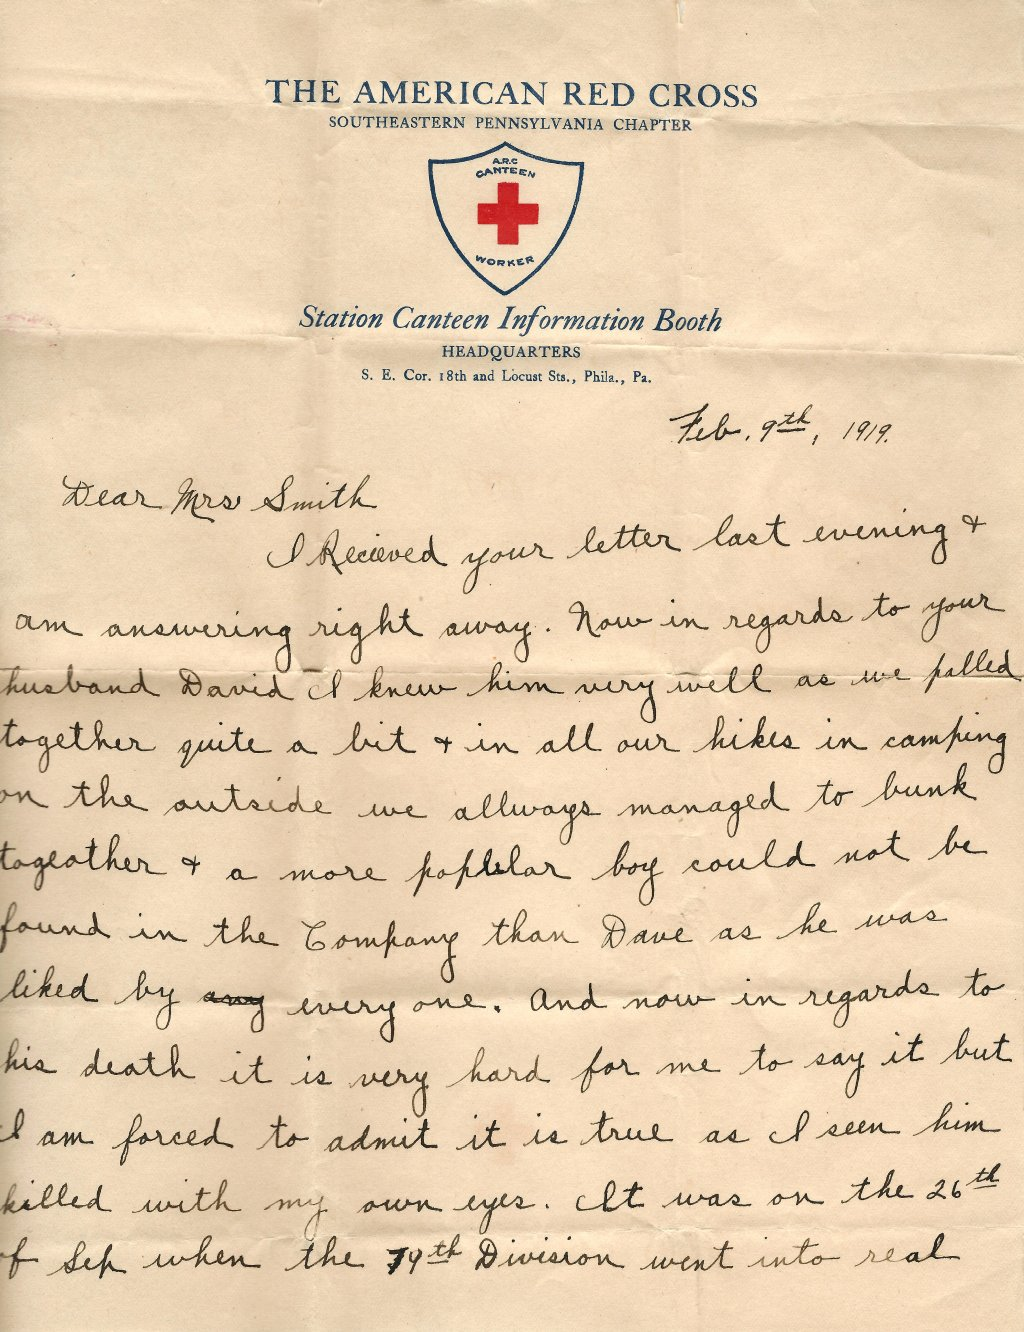 David Smith letter February 9 1919 on Red Cross Stationary from James Lennon - page 1